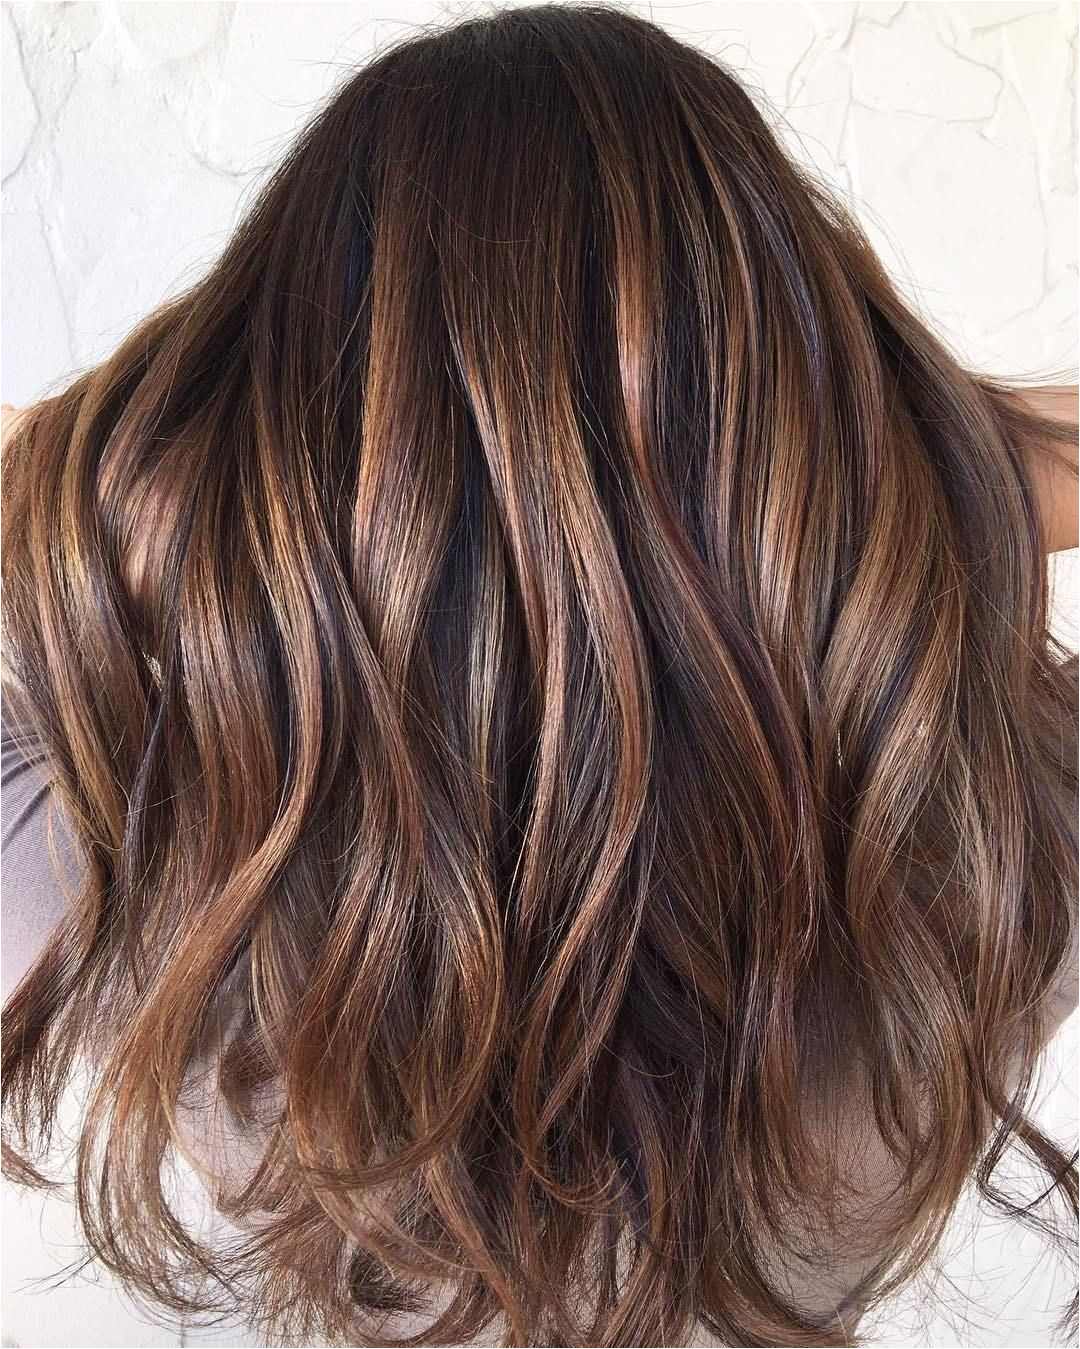 Hairstyles Copper Highlights 20 Tiger Eye Hair Ideas to Hold to Hair